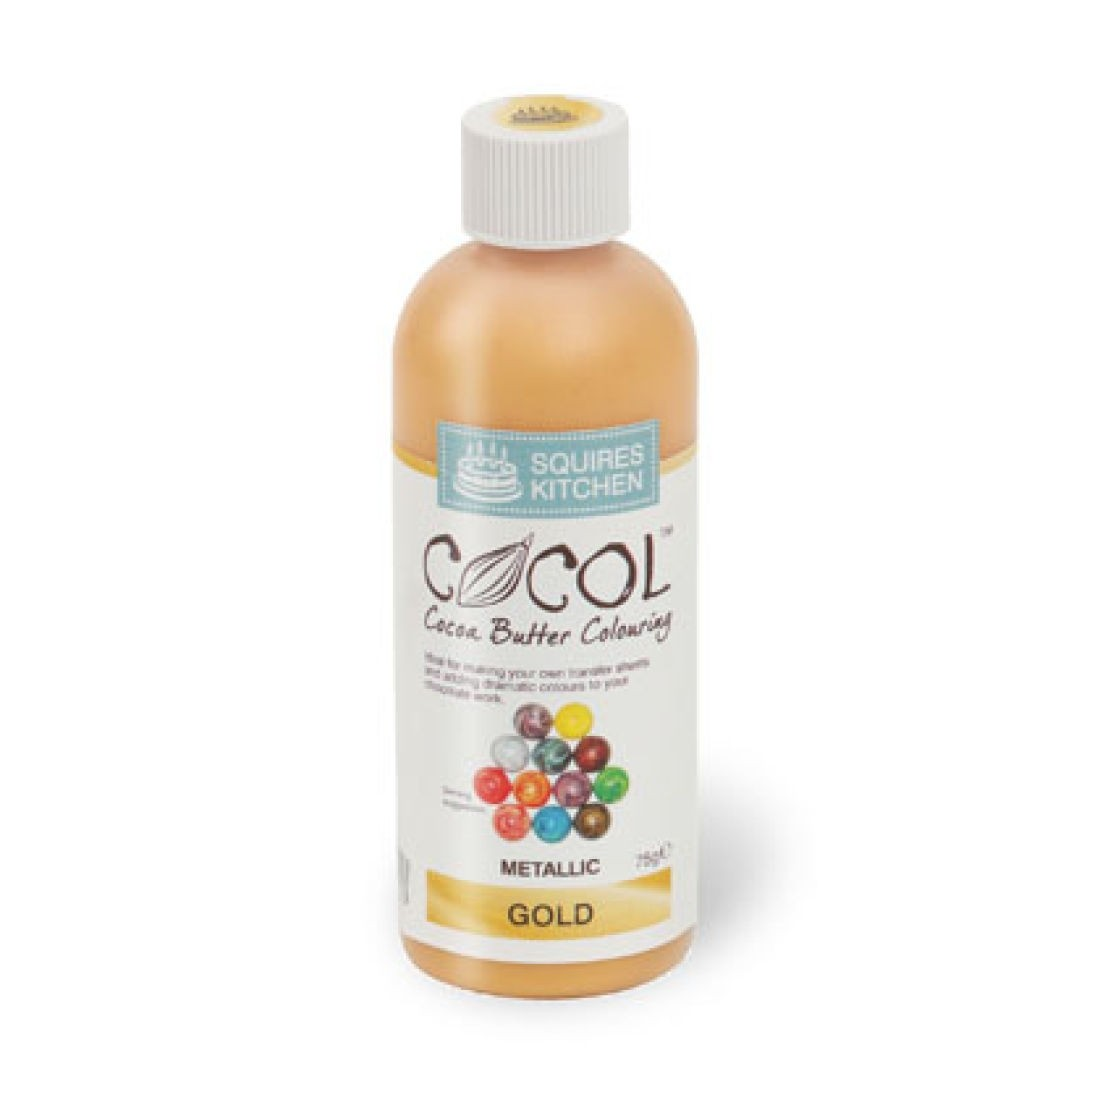 SK Professional COCOL Chocolate Colouring 75g Gold